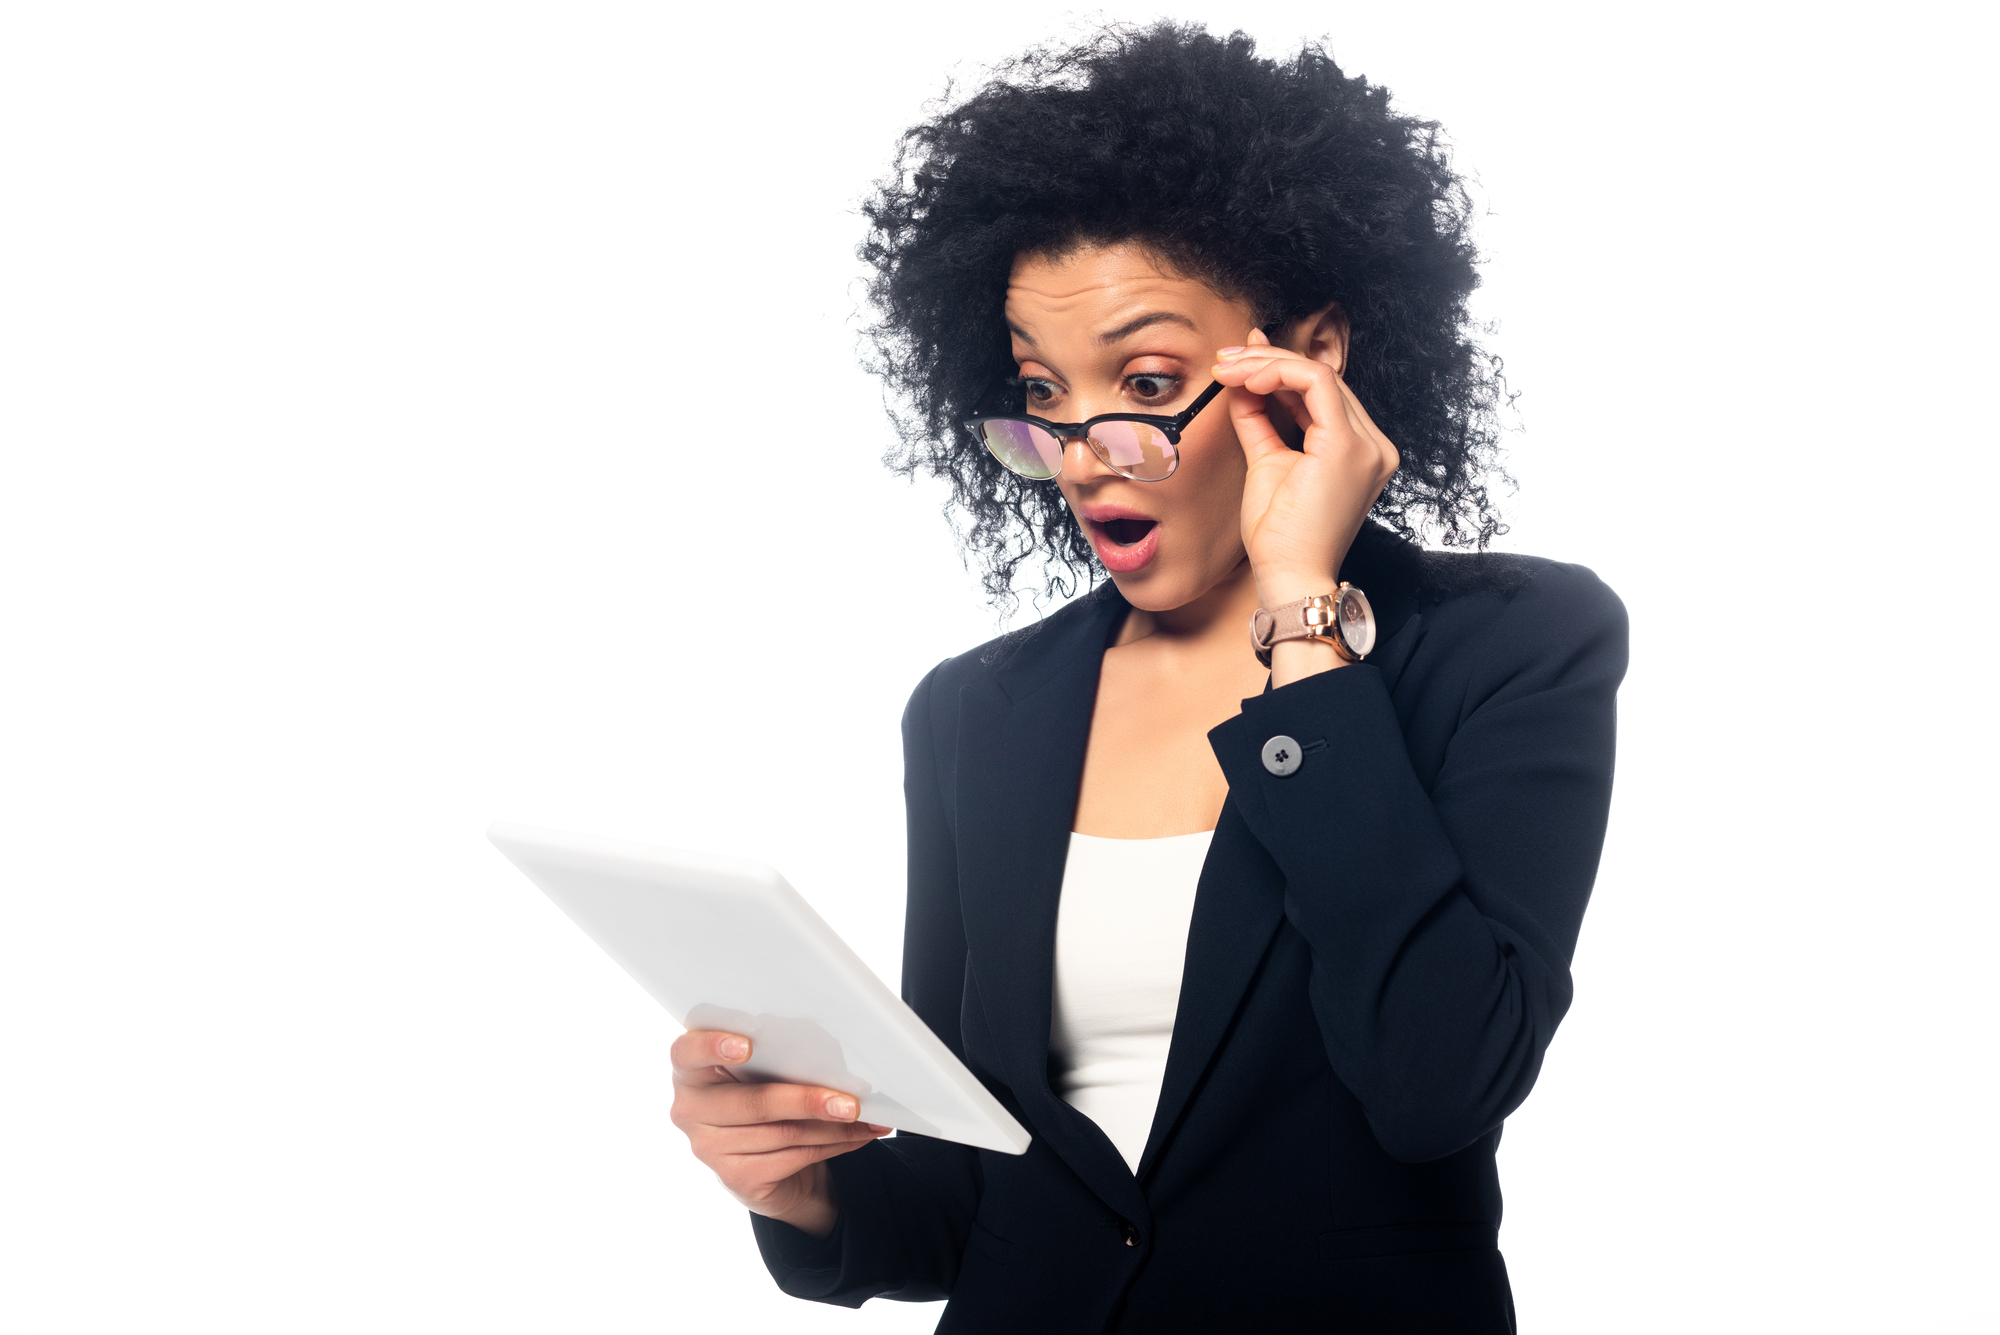 Shocked and surprised african american businesswoman looking at digital tablet isolated on white